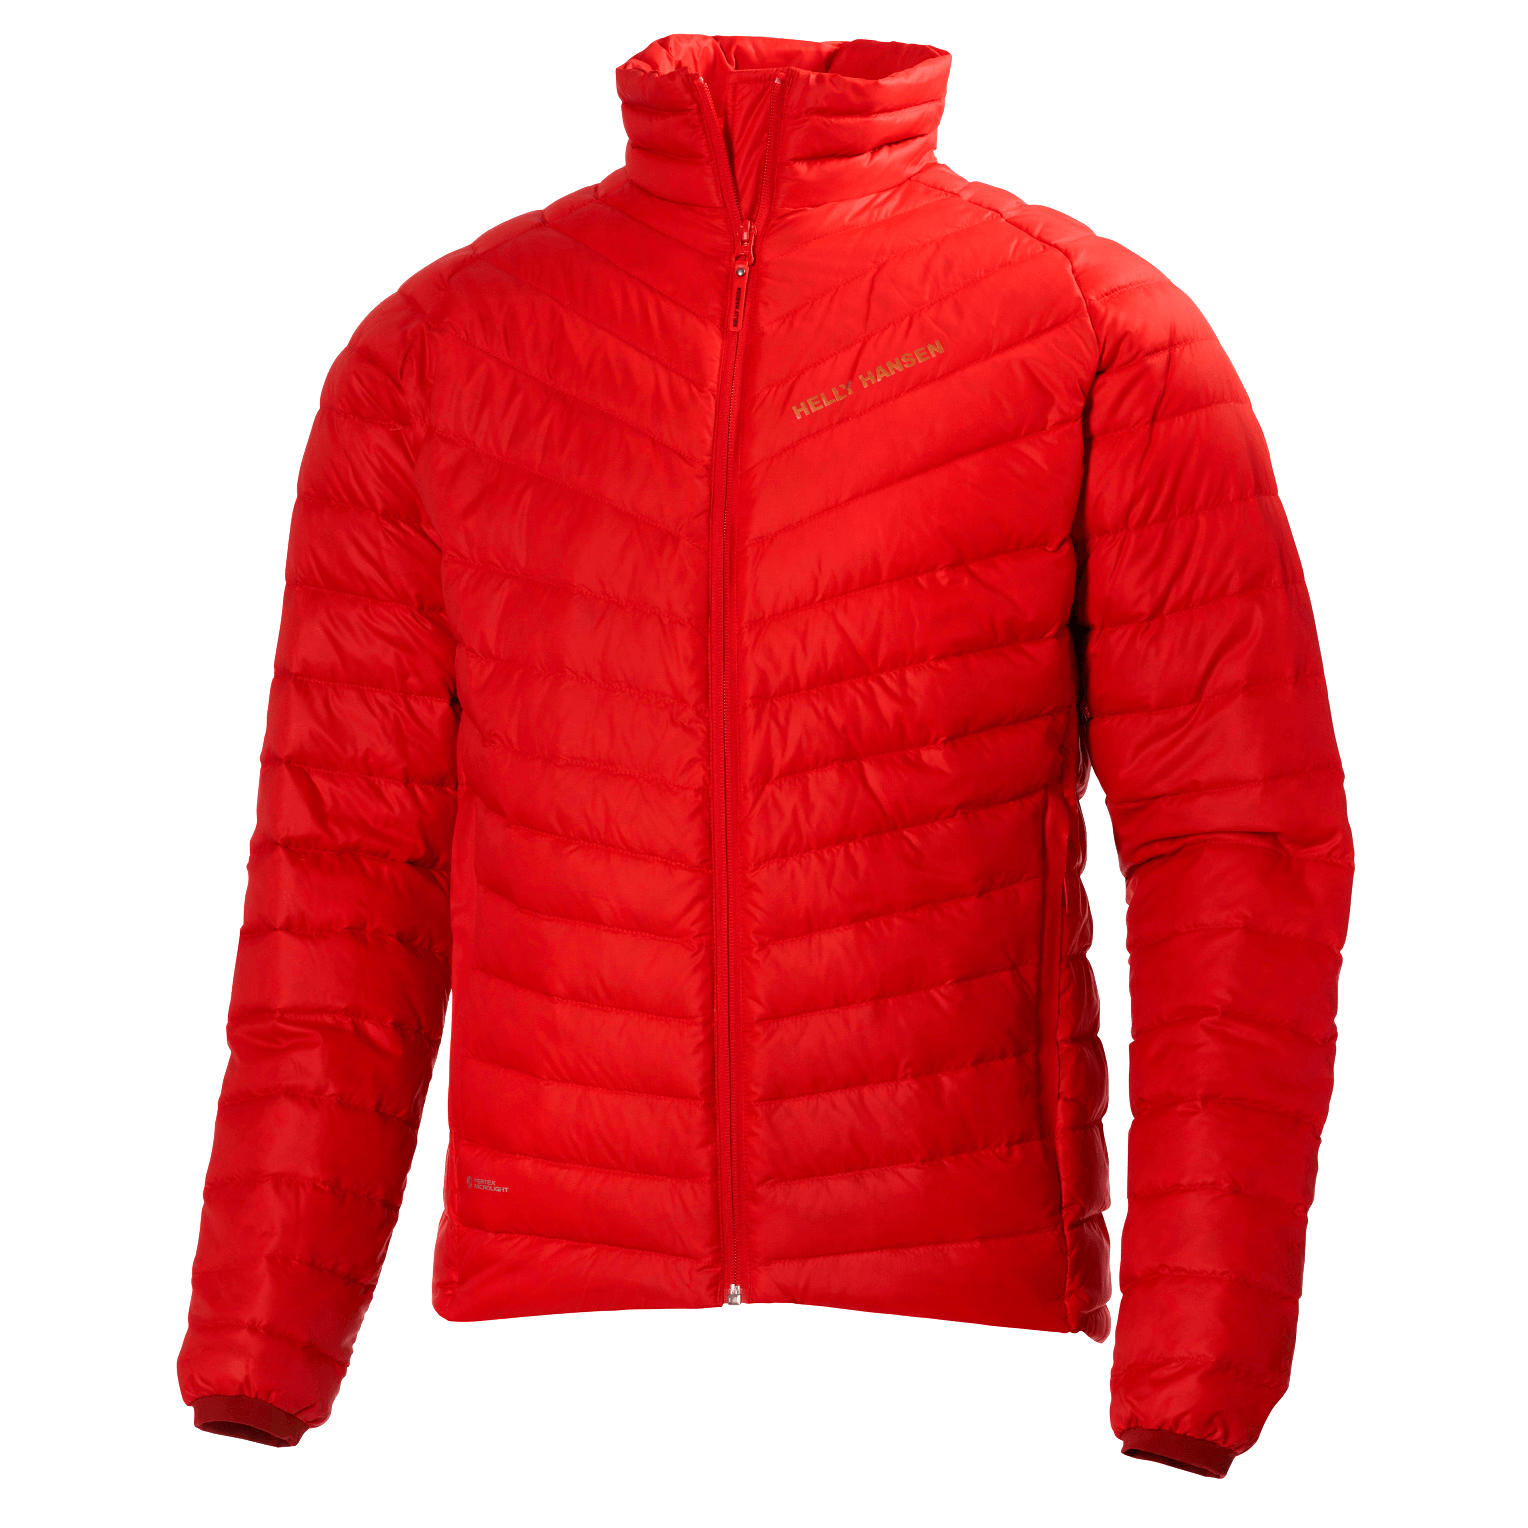 Red Jacket Png Image PNG Image